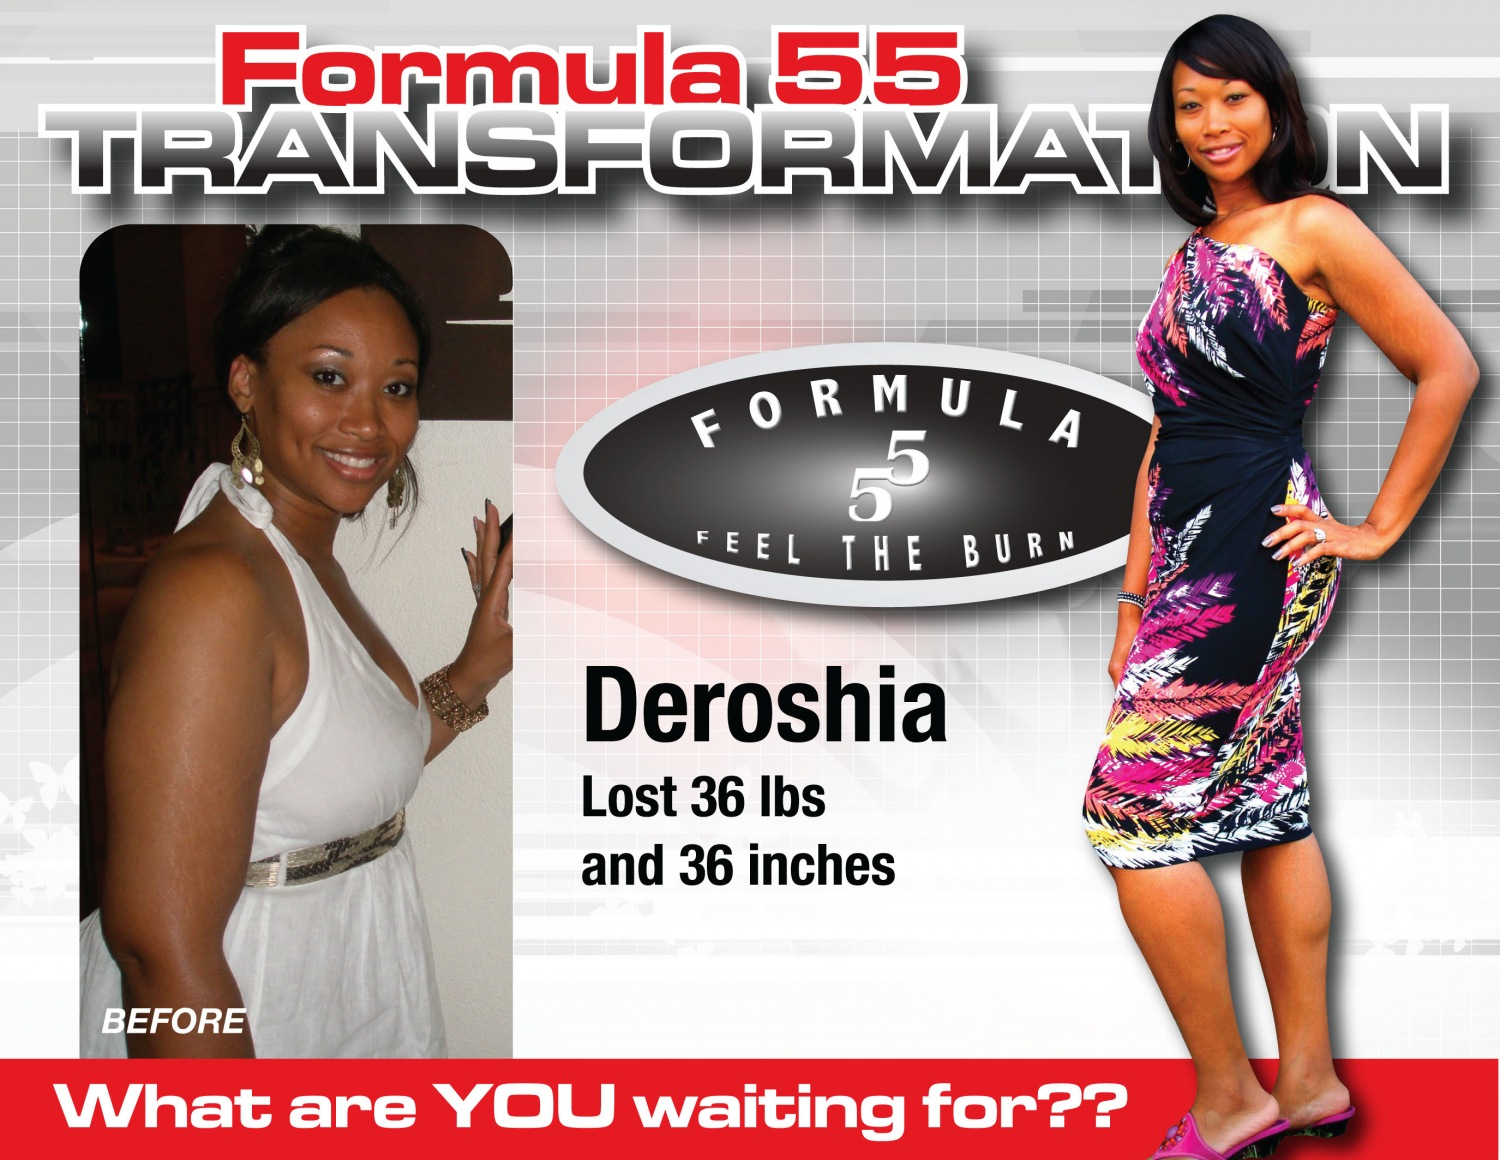 form-55-Transformation-deroshia-1.jpg